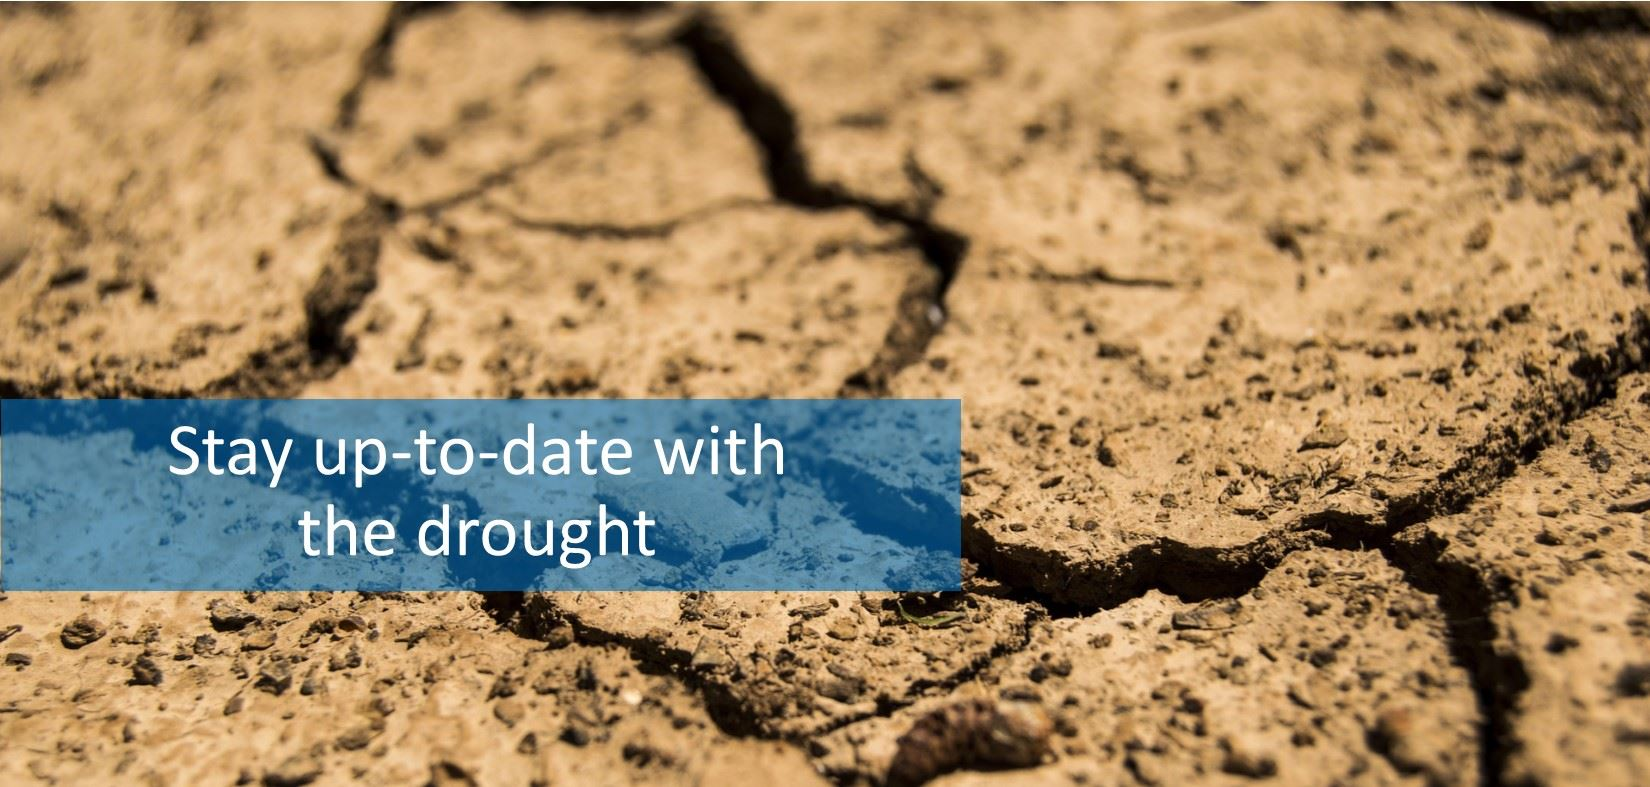 Drought - Stay up-to-date with the drought.